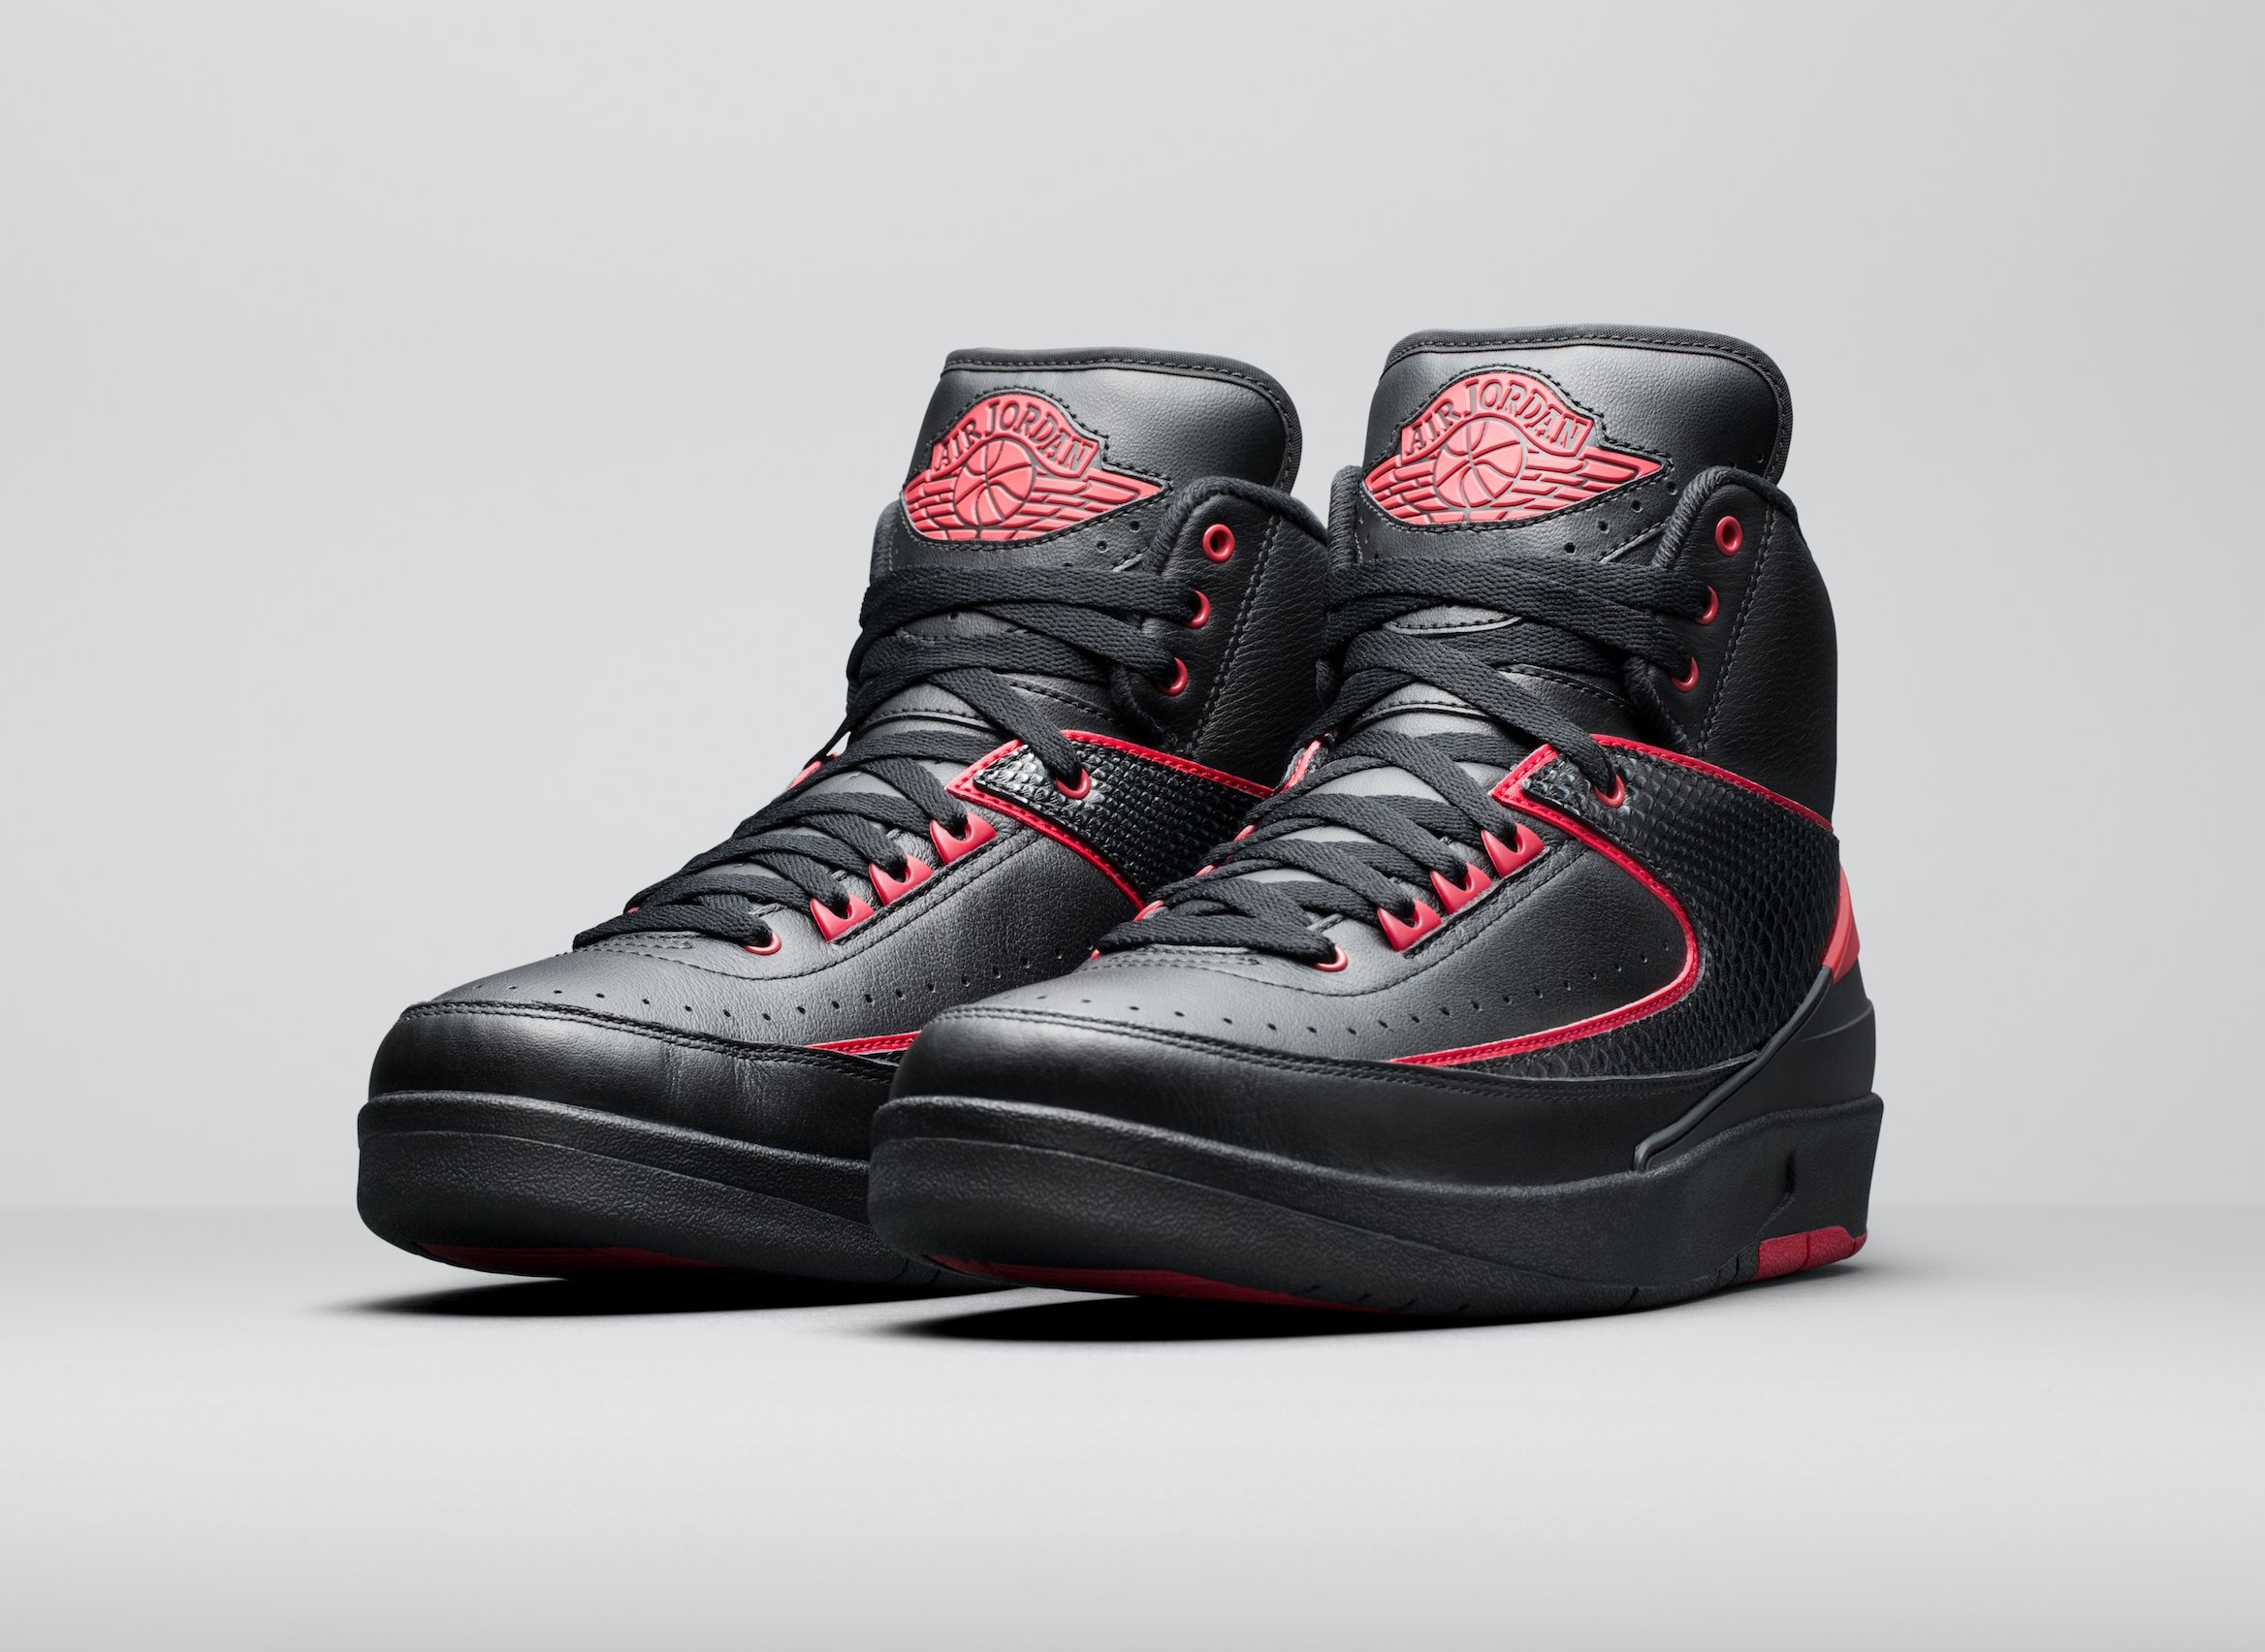 cd53452864e air jordan 2 alternate 87 release date. Air Jordan 2 (II) Retro Color: Black/Gym  Red-Black Style: 834274-001